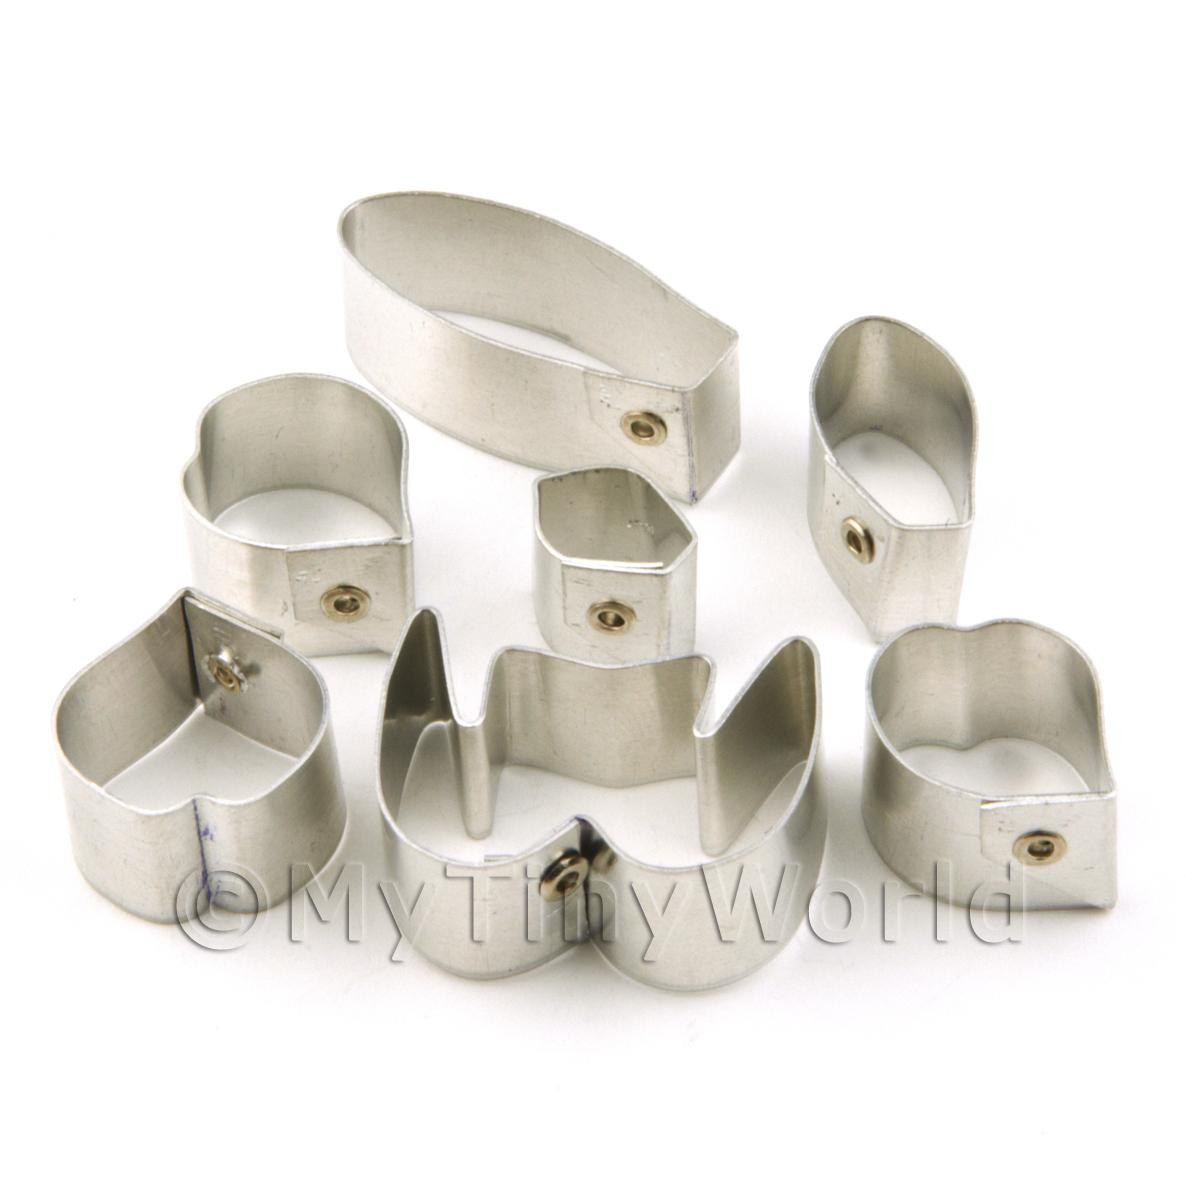 Set of 7 Metal Ladys Slipper Bellatulum Orchid Craft Cutters